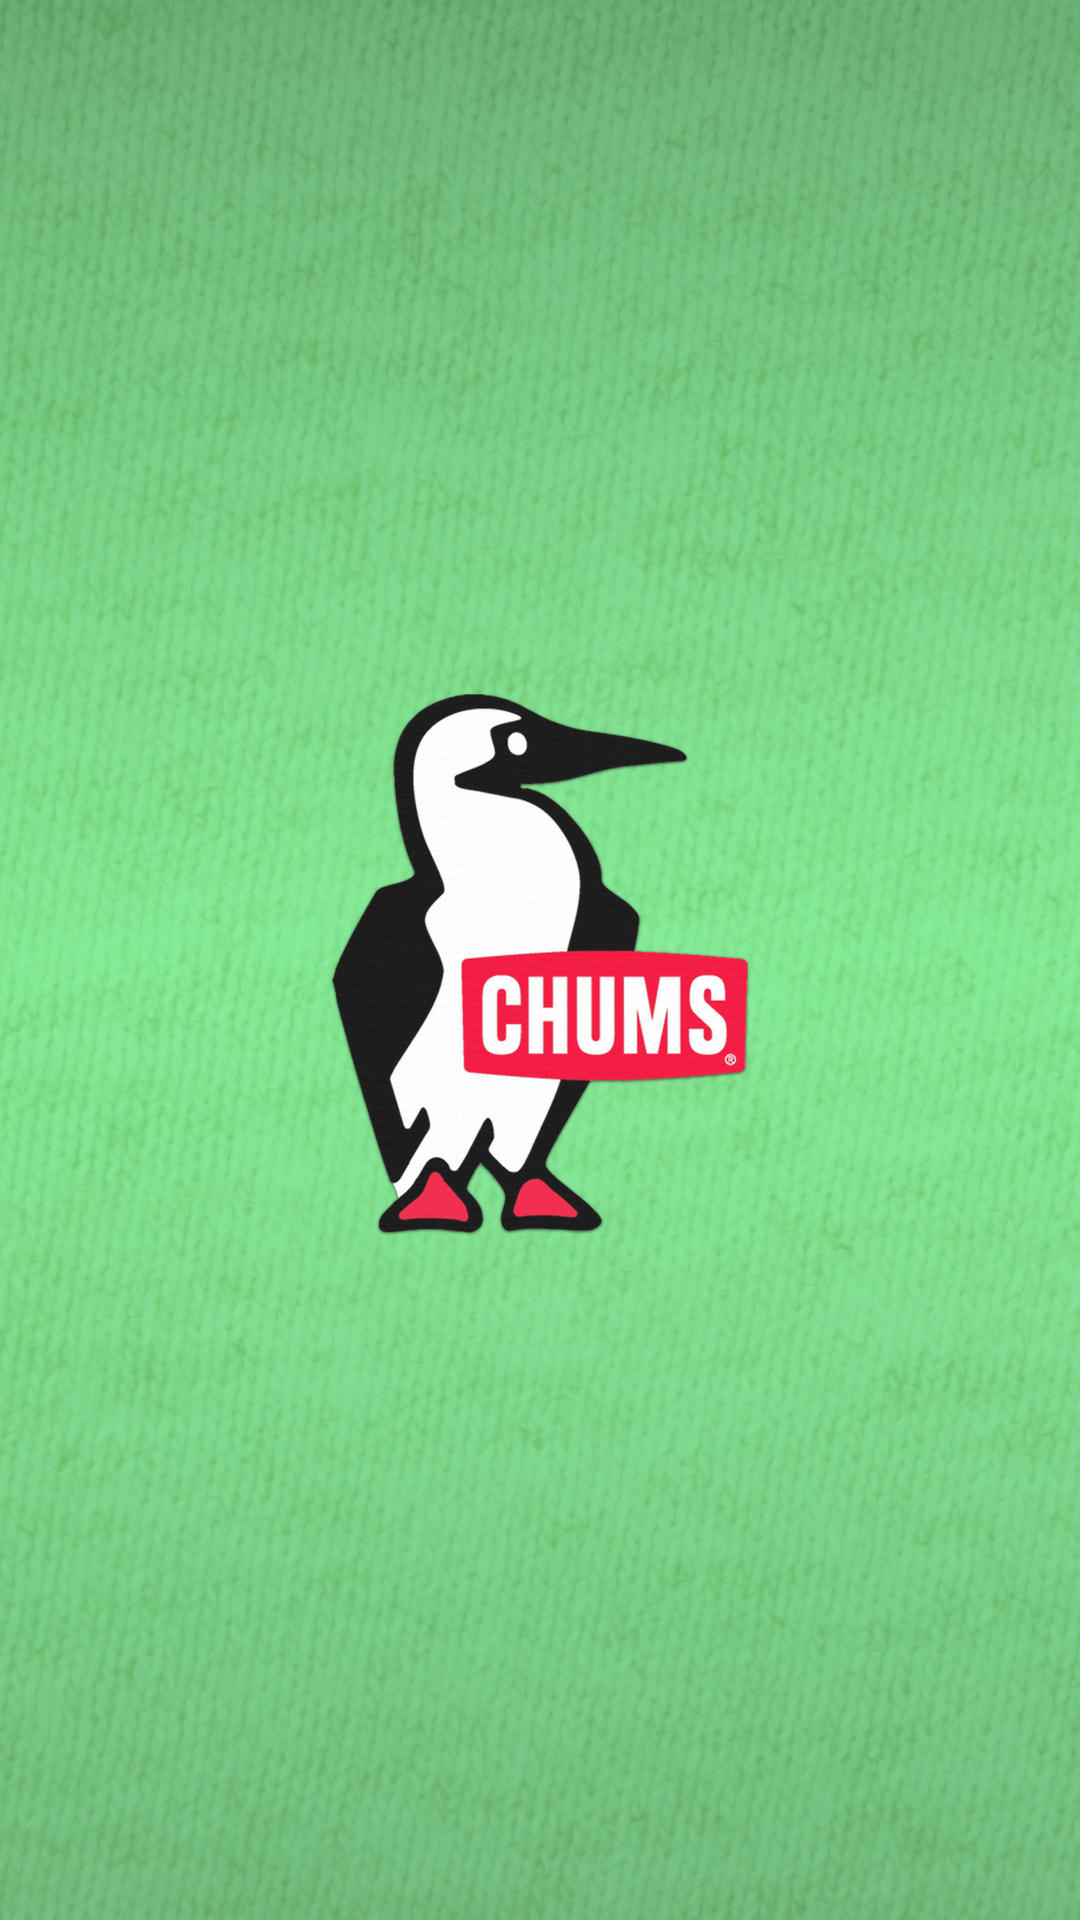 chums12 - 50 CHUMS HQ Smartphone Wallpaper Collection